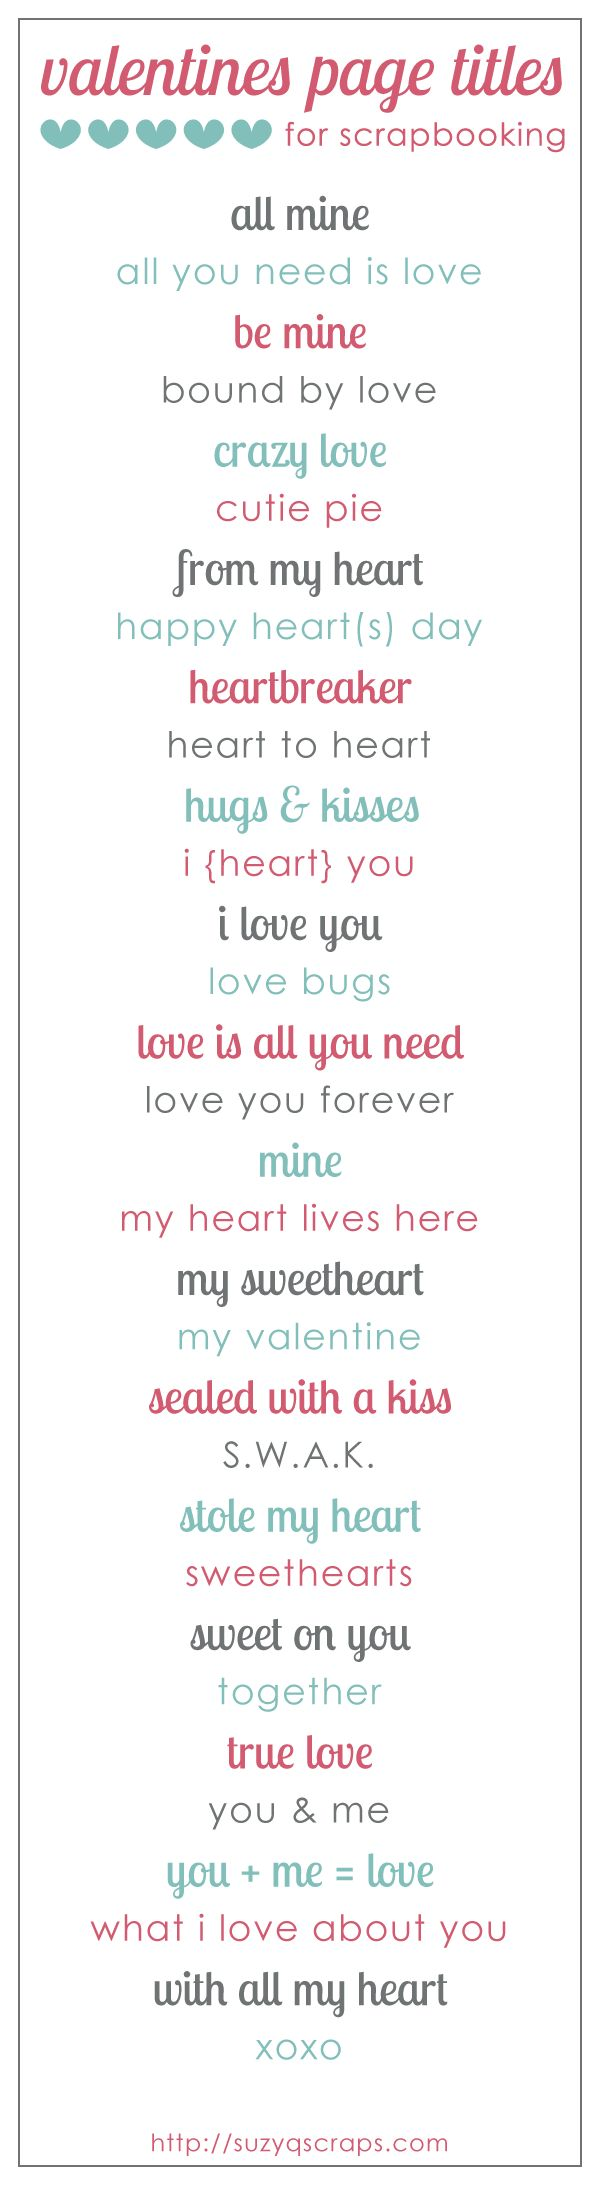 valentines {and love} scrapbook ideas | valentines scrapbook page titles